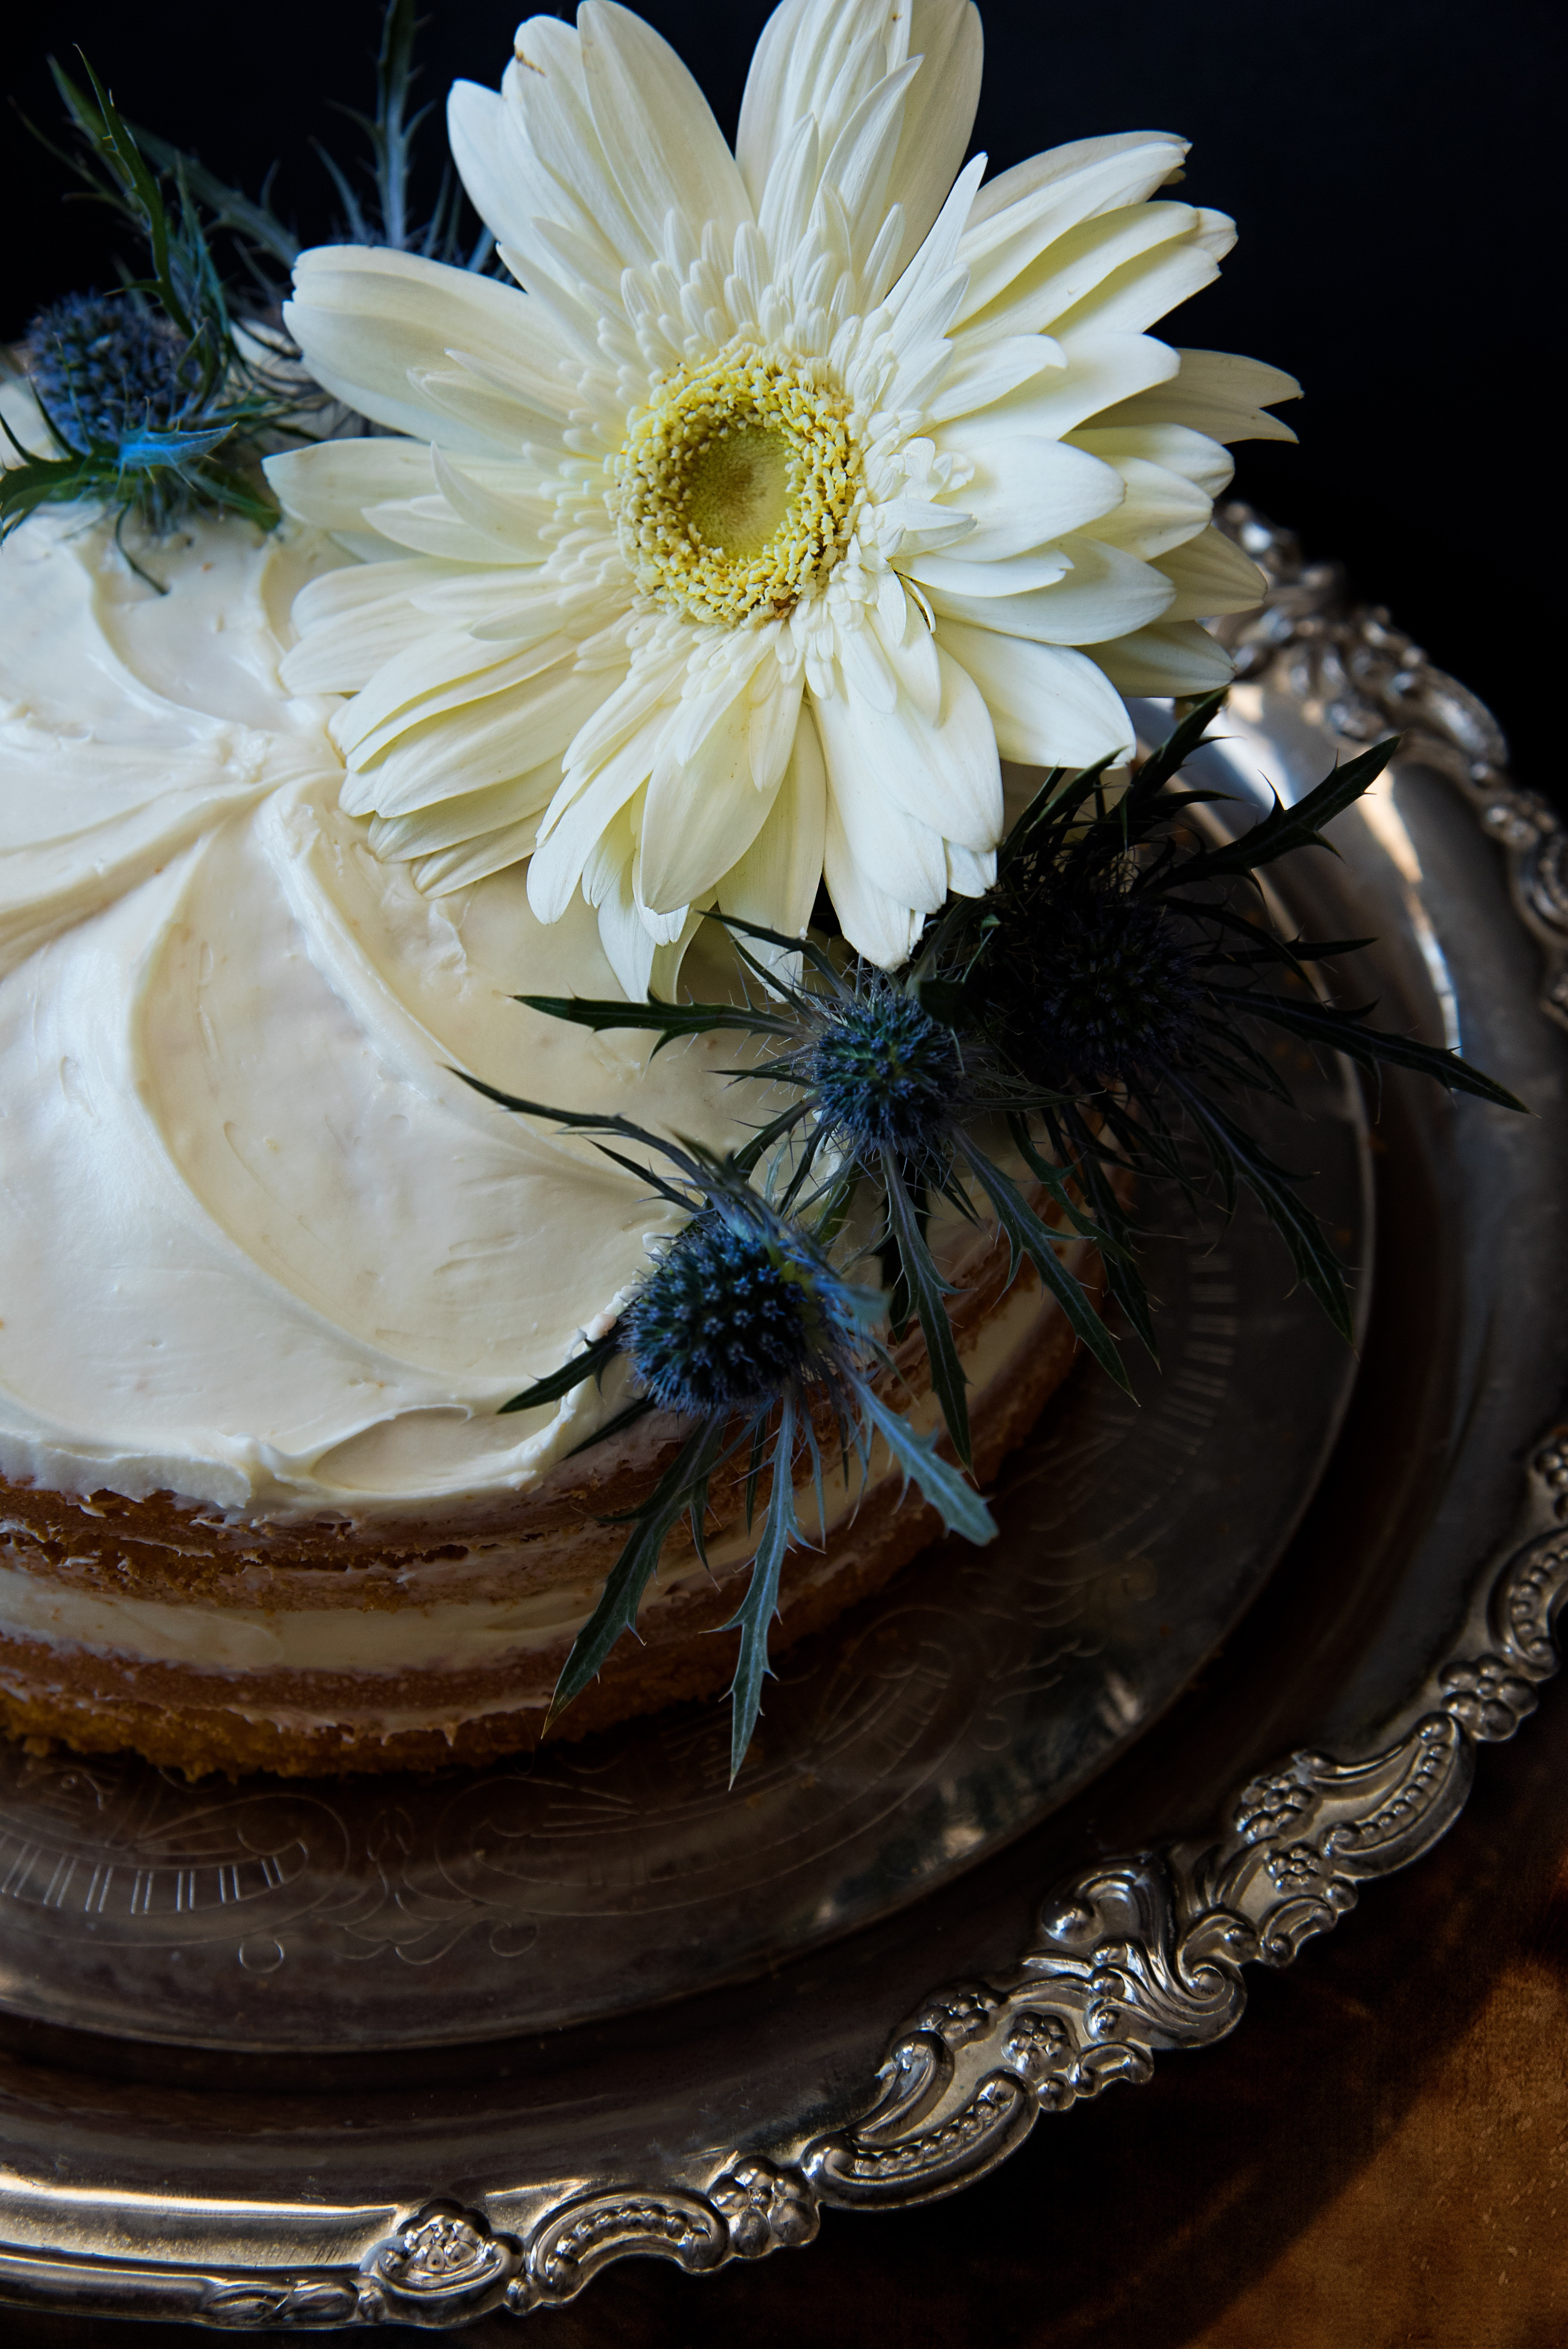 White Flowers on Round Cake With White Cream, Pastry, Petals, Ornate, Frosting, HQ Photo